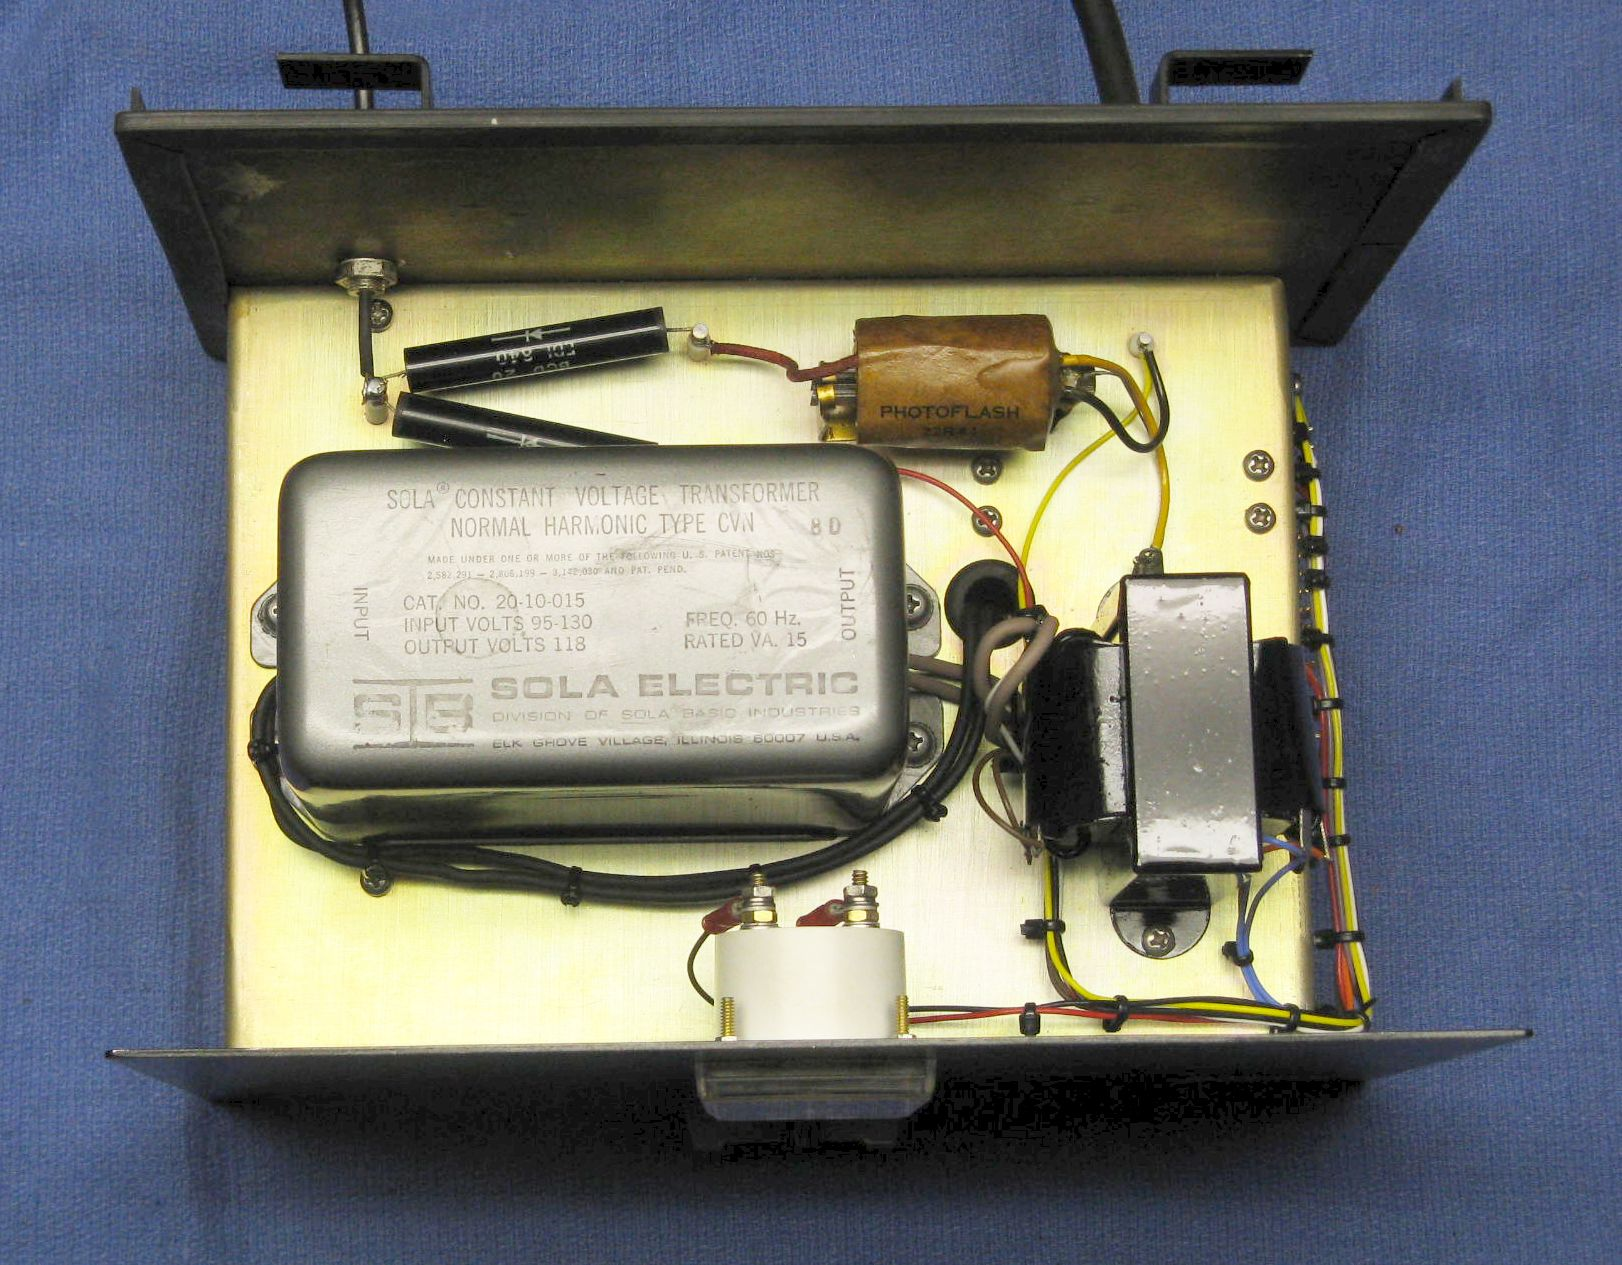 Sams Laser Faq Hene Power Supplies Description This Is An Example Of A Regulated 120 Vac To 12 Vdc Whats On The Top Chassis Not Much Large Can Sola Constant Voltage Transformer Presumably Provides Ac Line Regulation